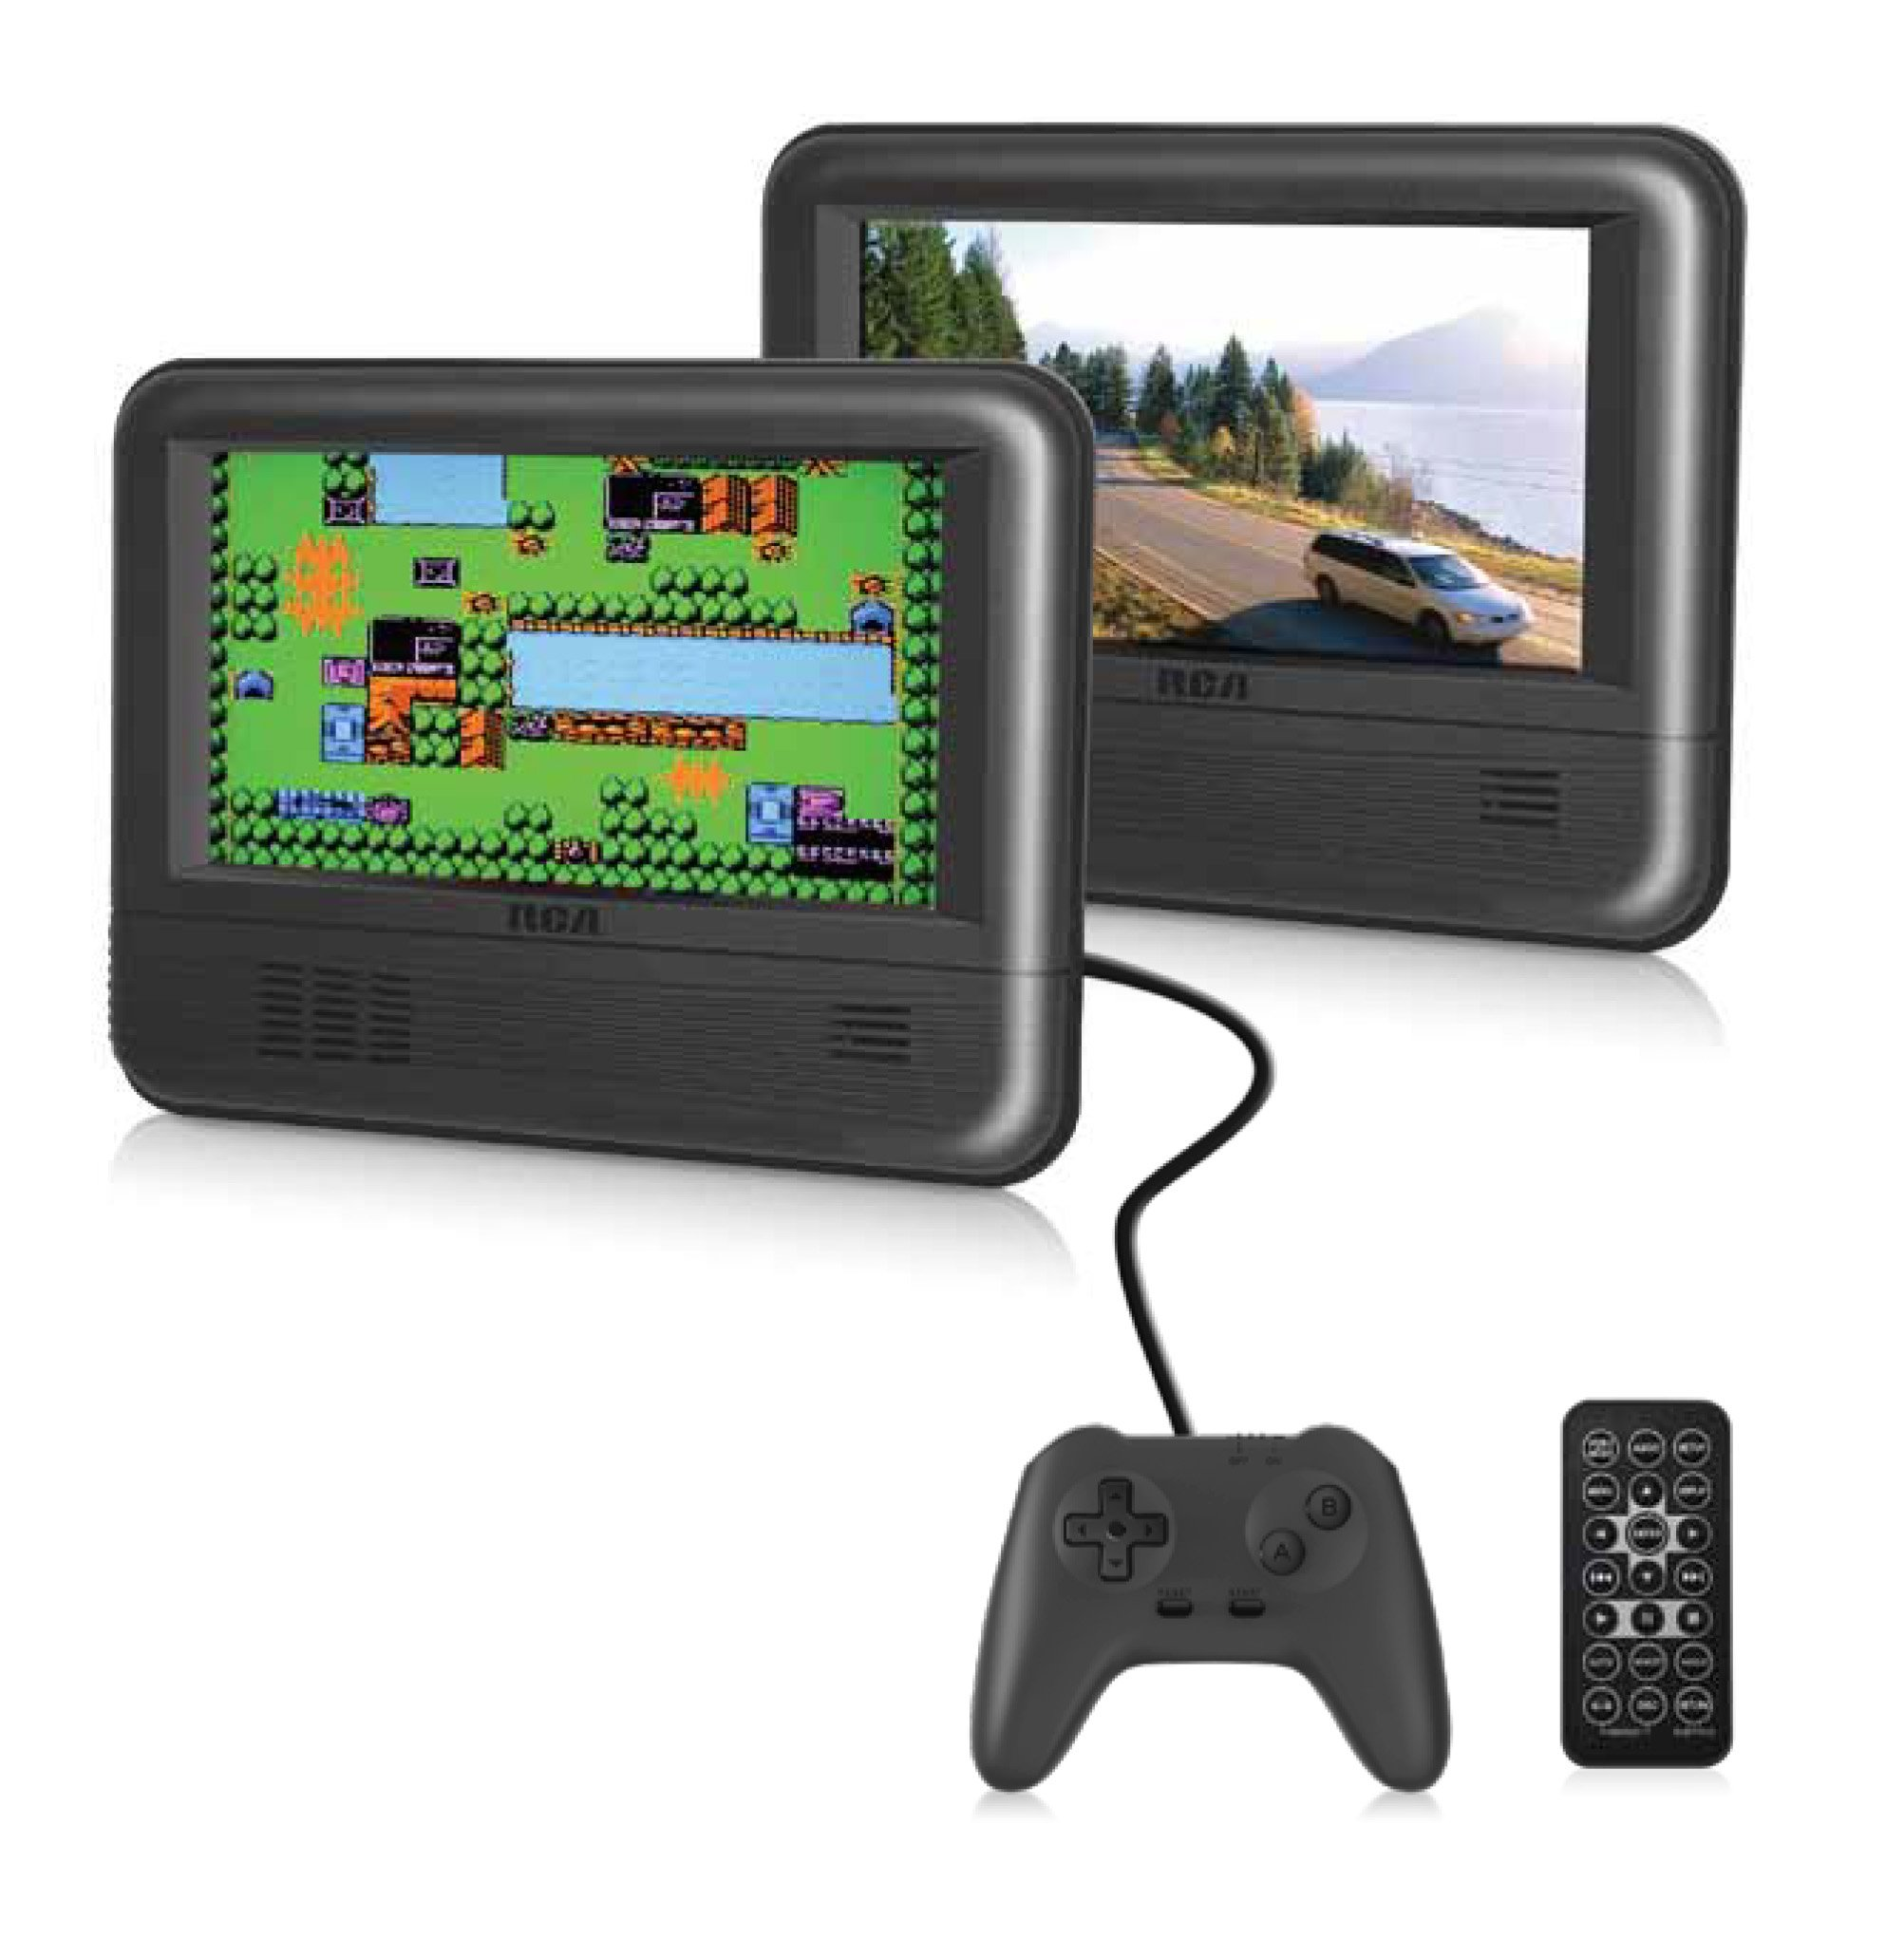 RCA Dual Screen Portable DVD Player & Game Pad System - Set of Two 7'' Screens, (6-Piece Kit) - (DRC62705E24G)